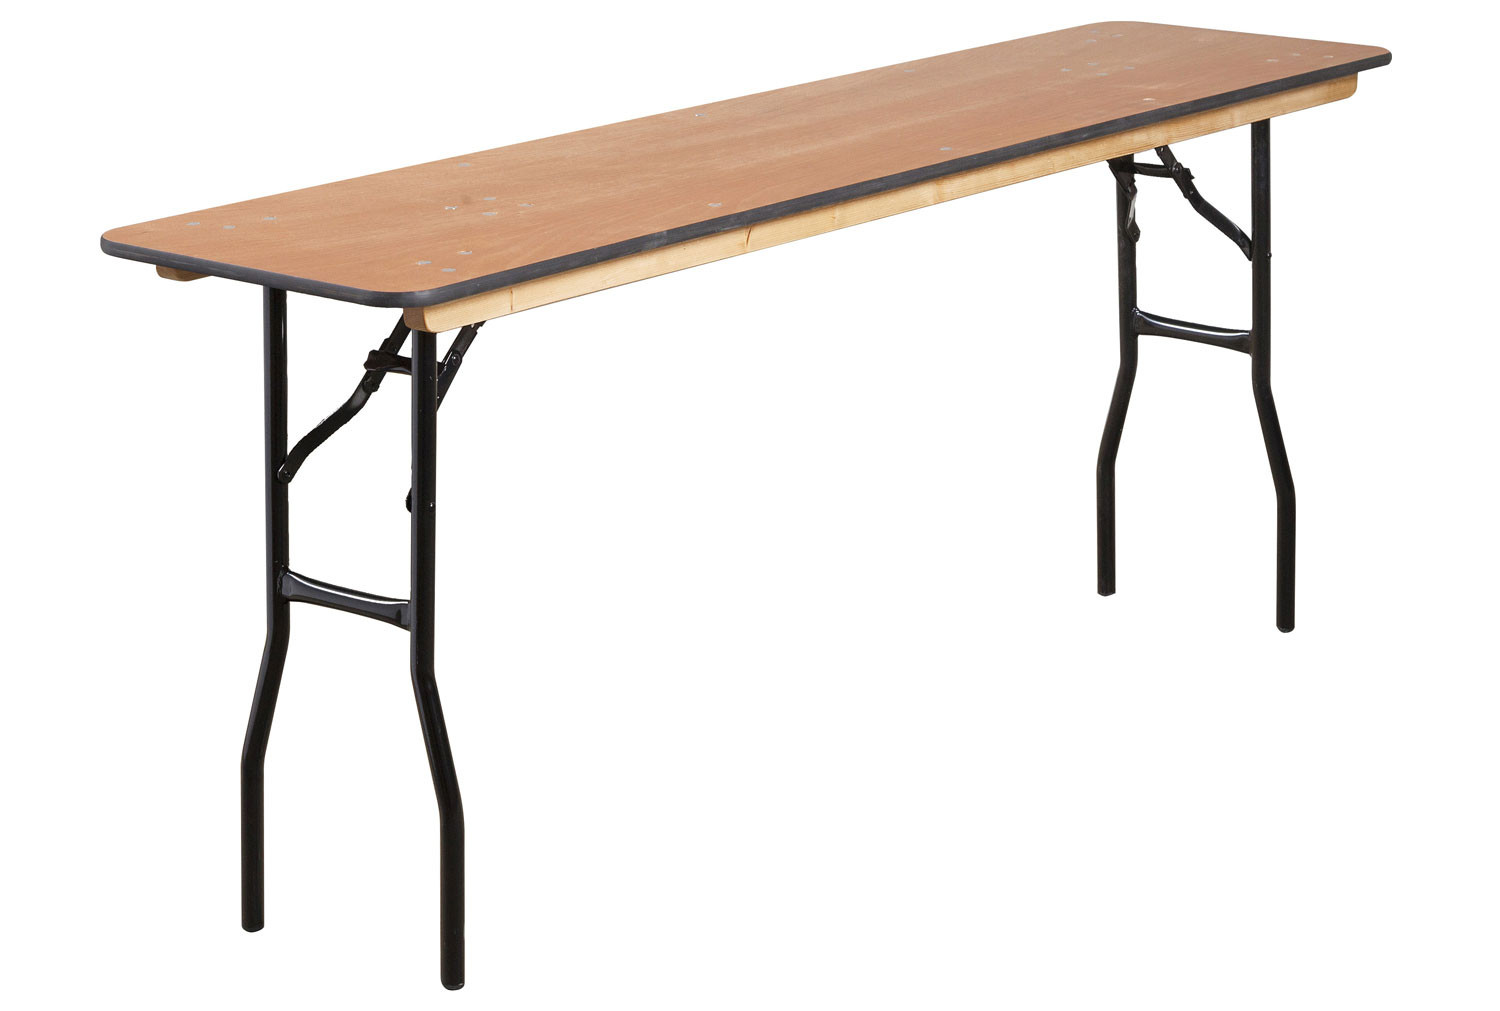 Lisboa Slimline Rectangular Folding Table